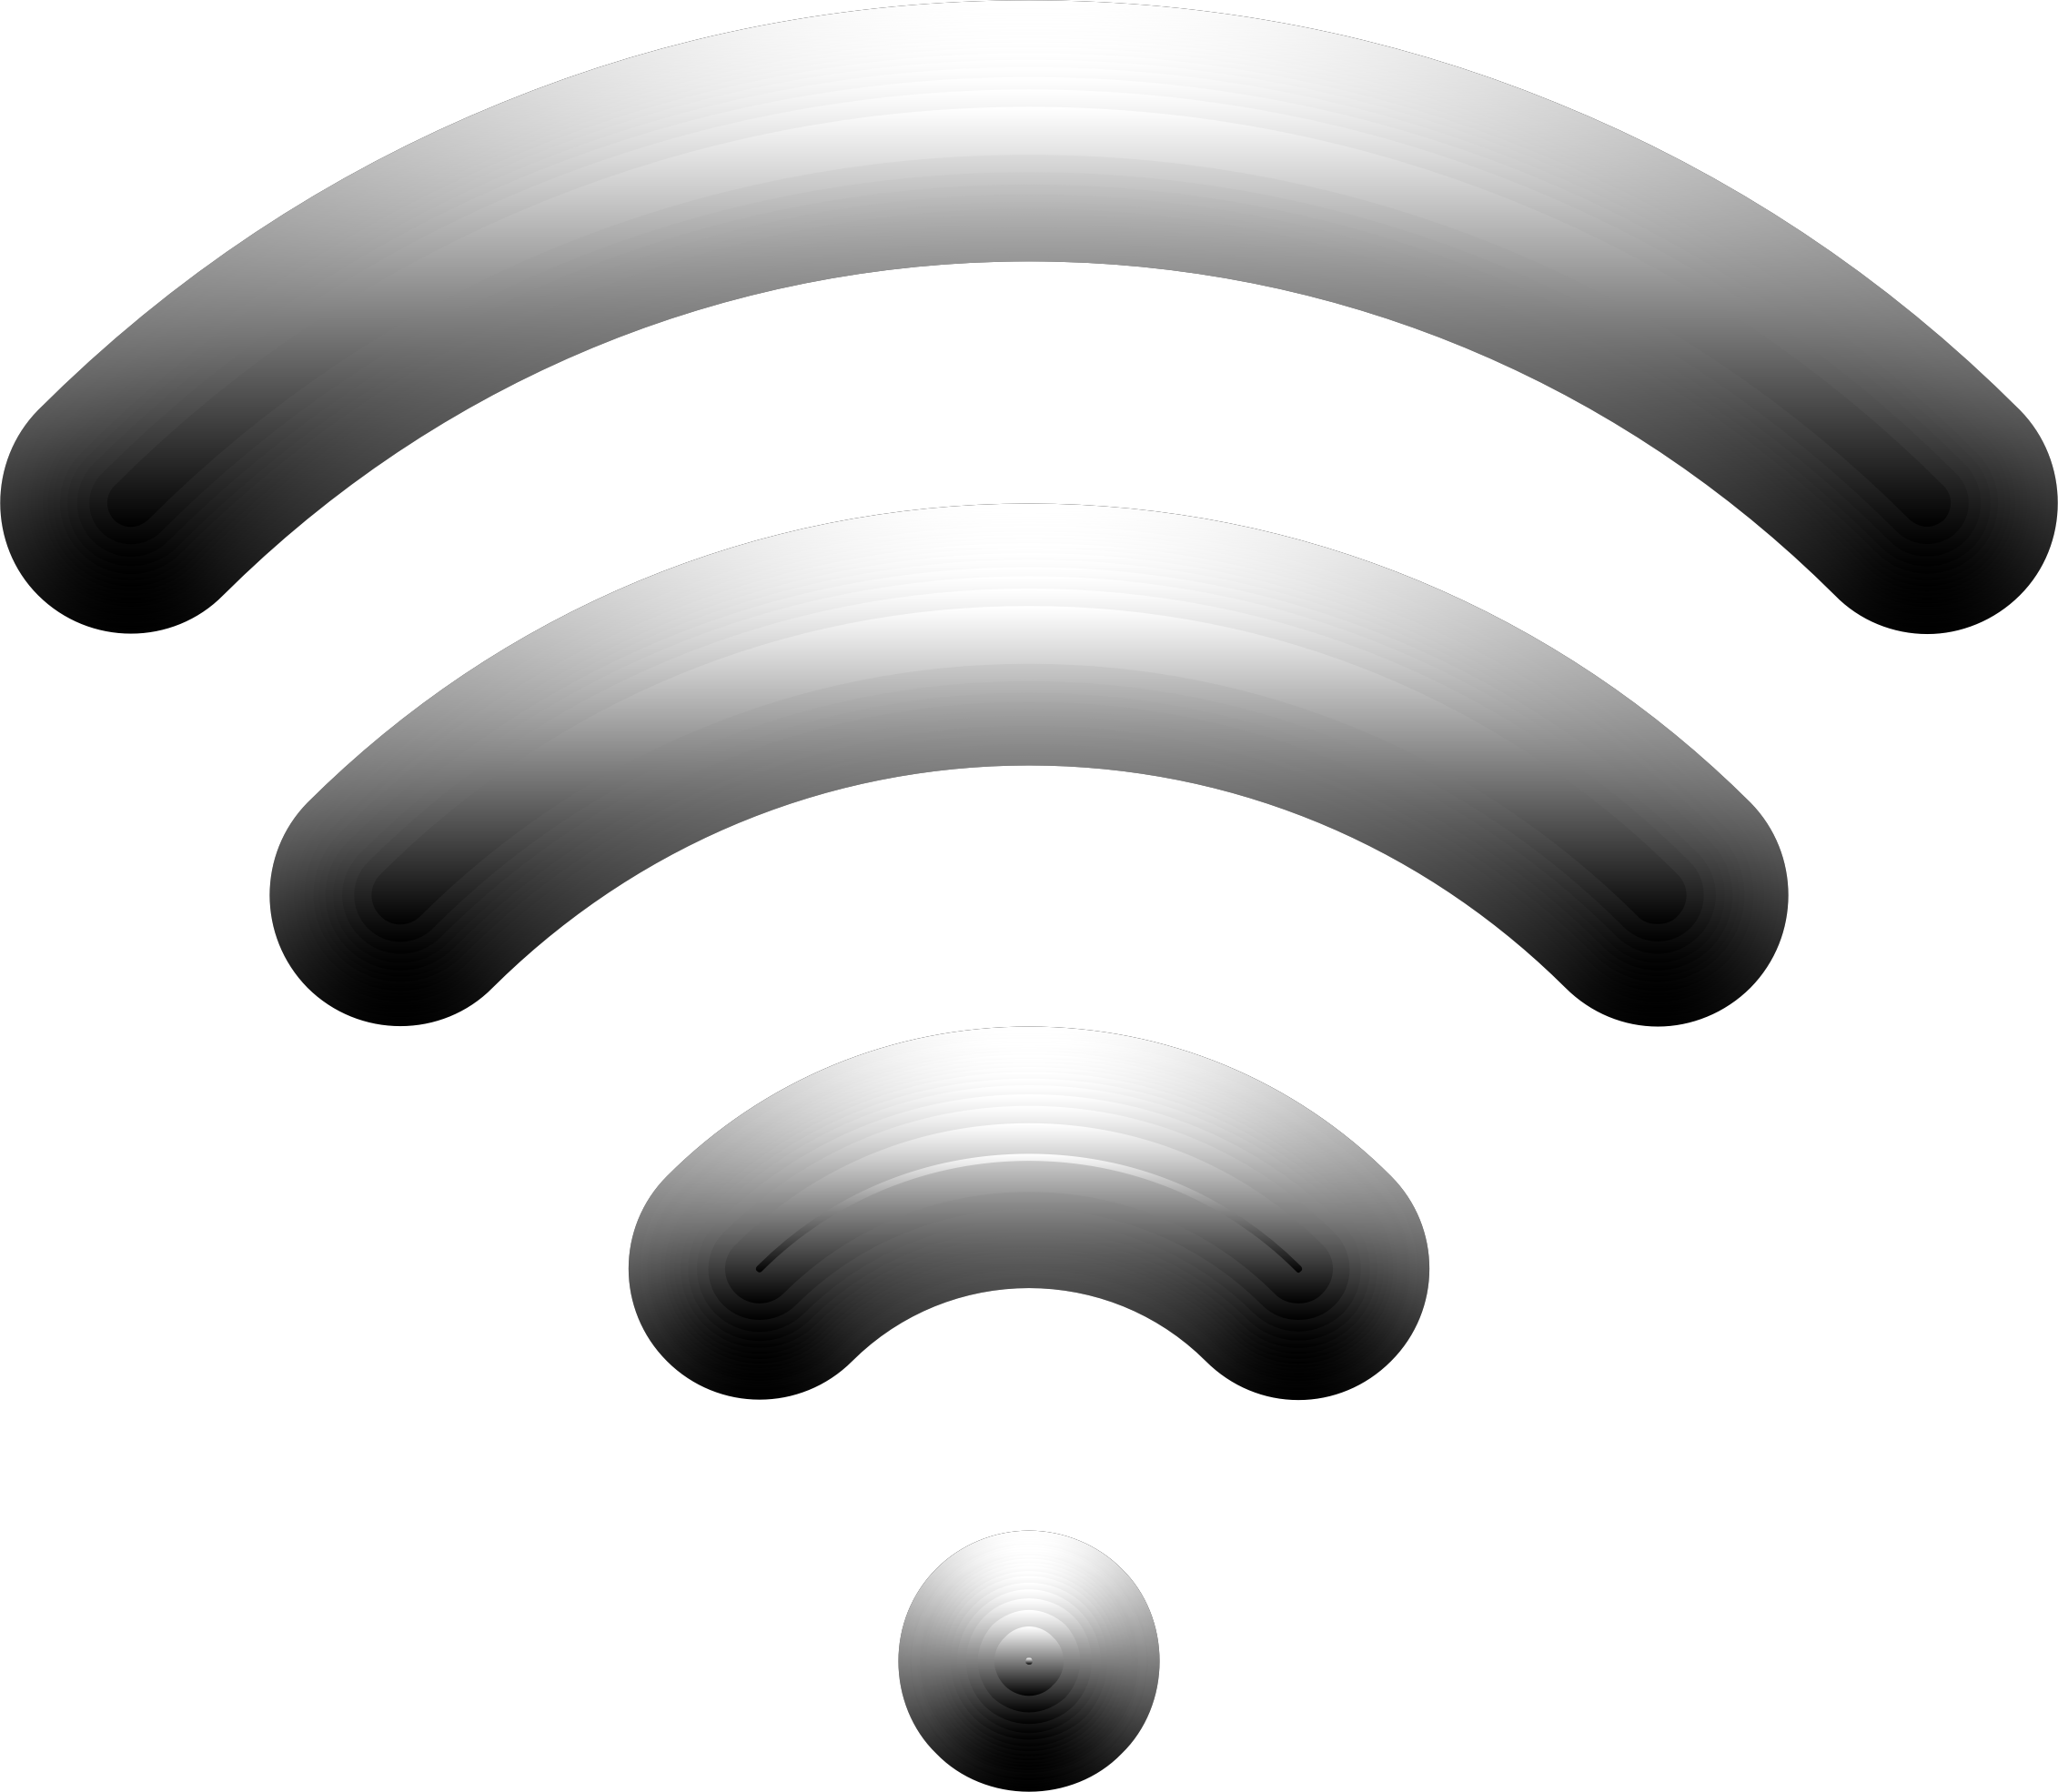 Wireless Signal Icon Enhanced 2 Variation 2 by GDJ